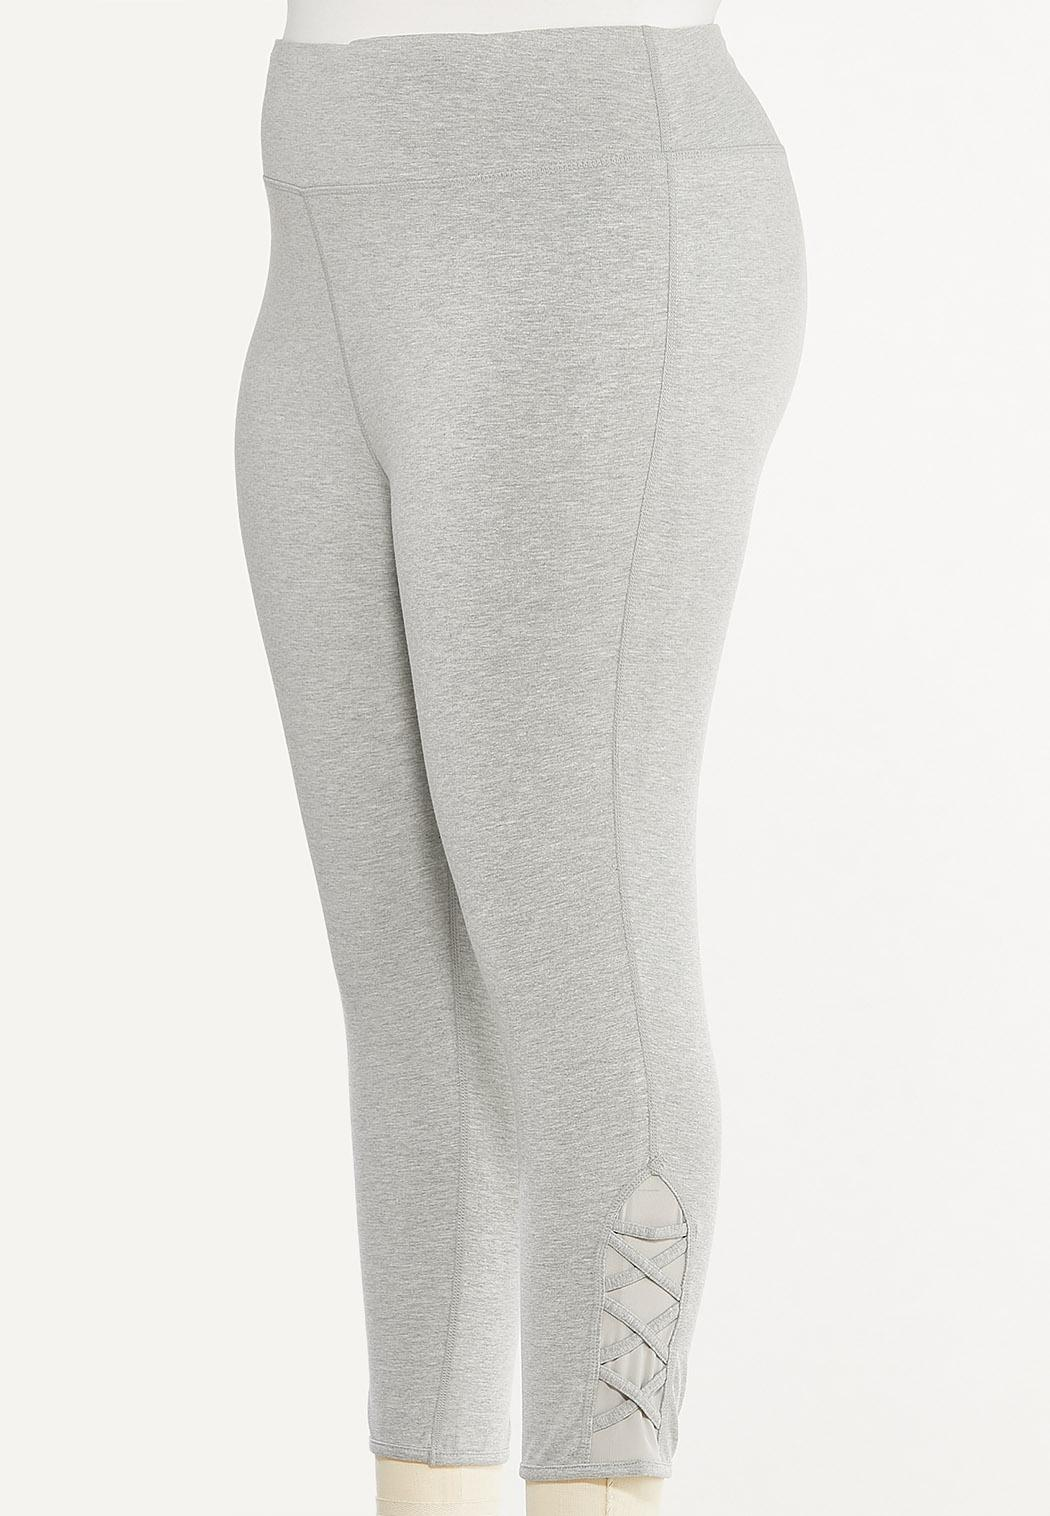 Plus Size Cropped Criss Cross Leggings (Item #44477358)